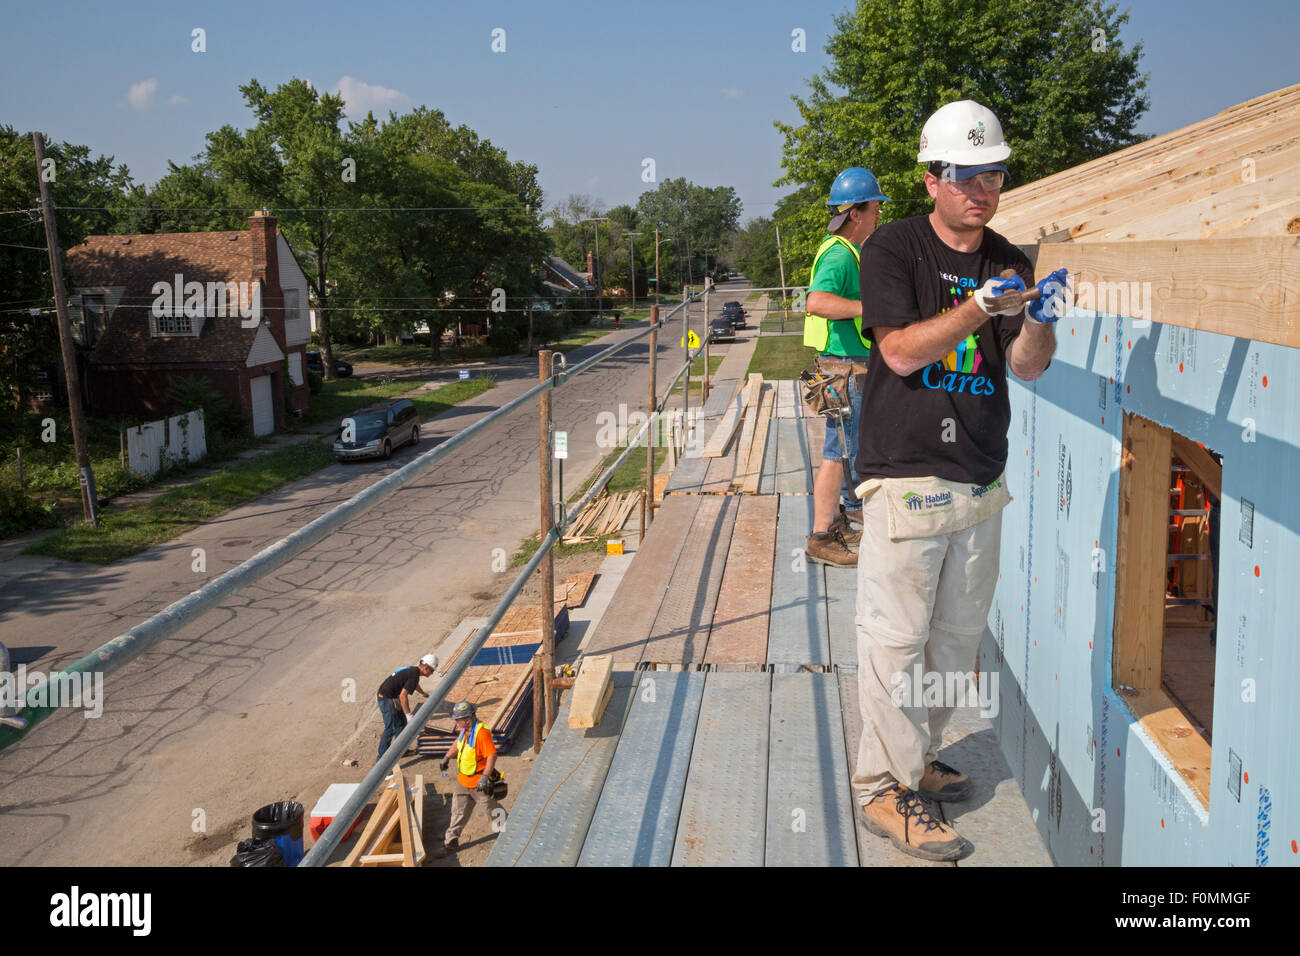 Detroit, Michigan - Habitat for Humanity volunteers build a house for a low-income family. - Stock Image